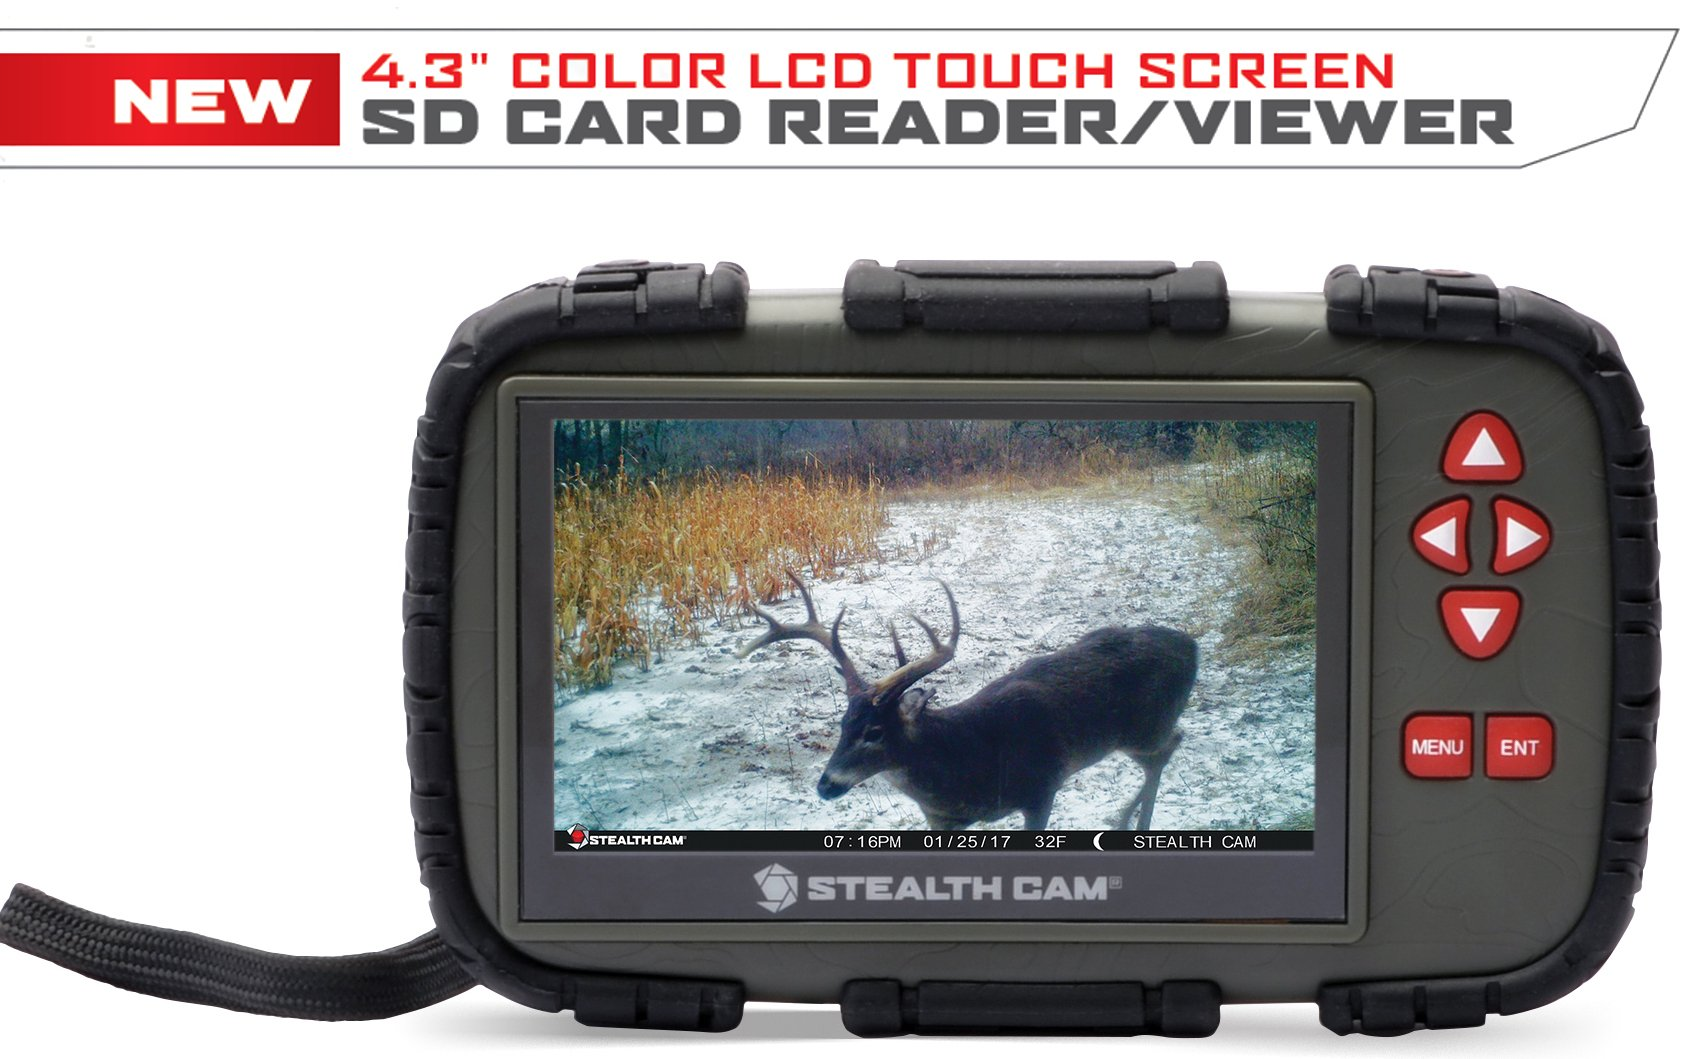 Stealth Cam 4.3″ Color LCD Touch Screen SD Card Reader/Viewer